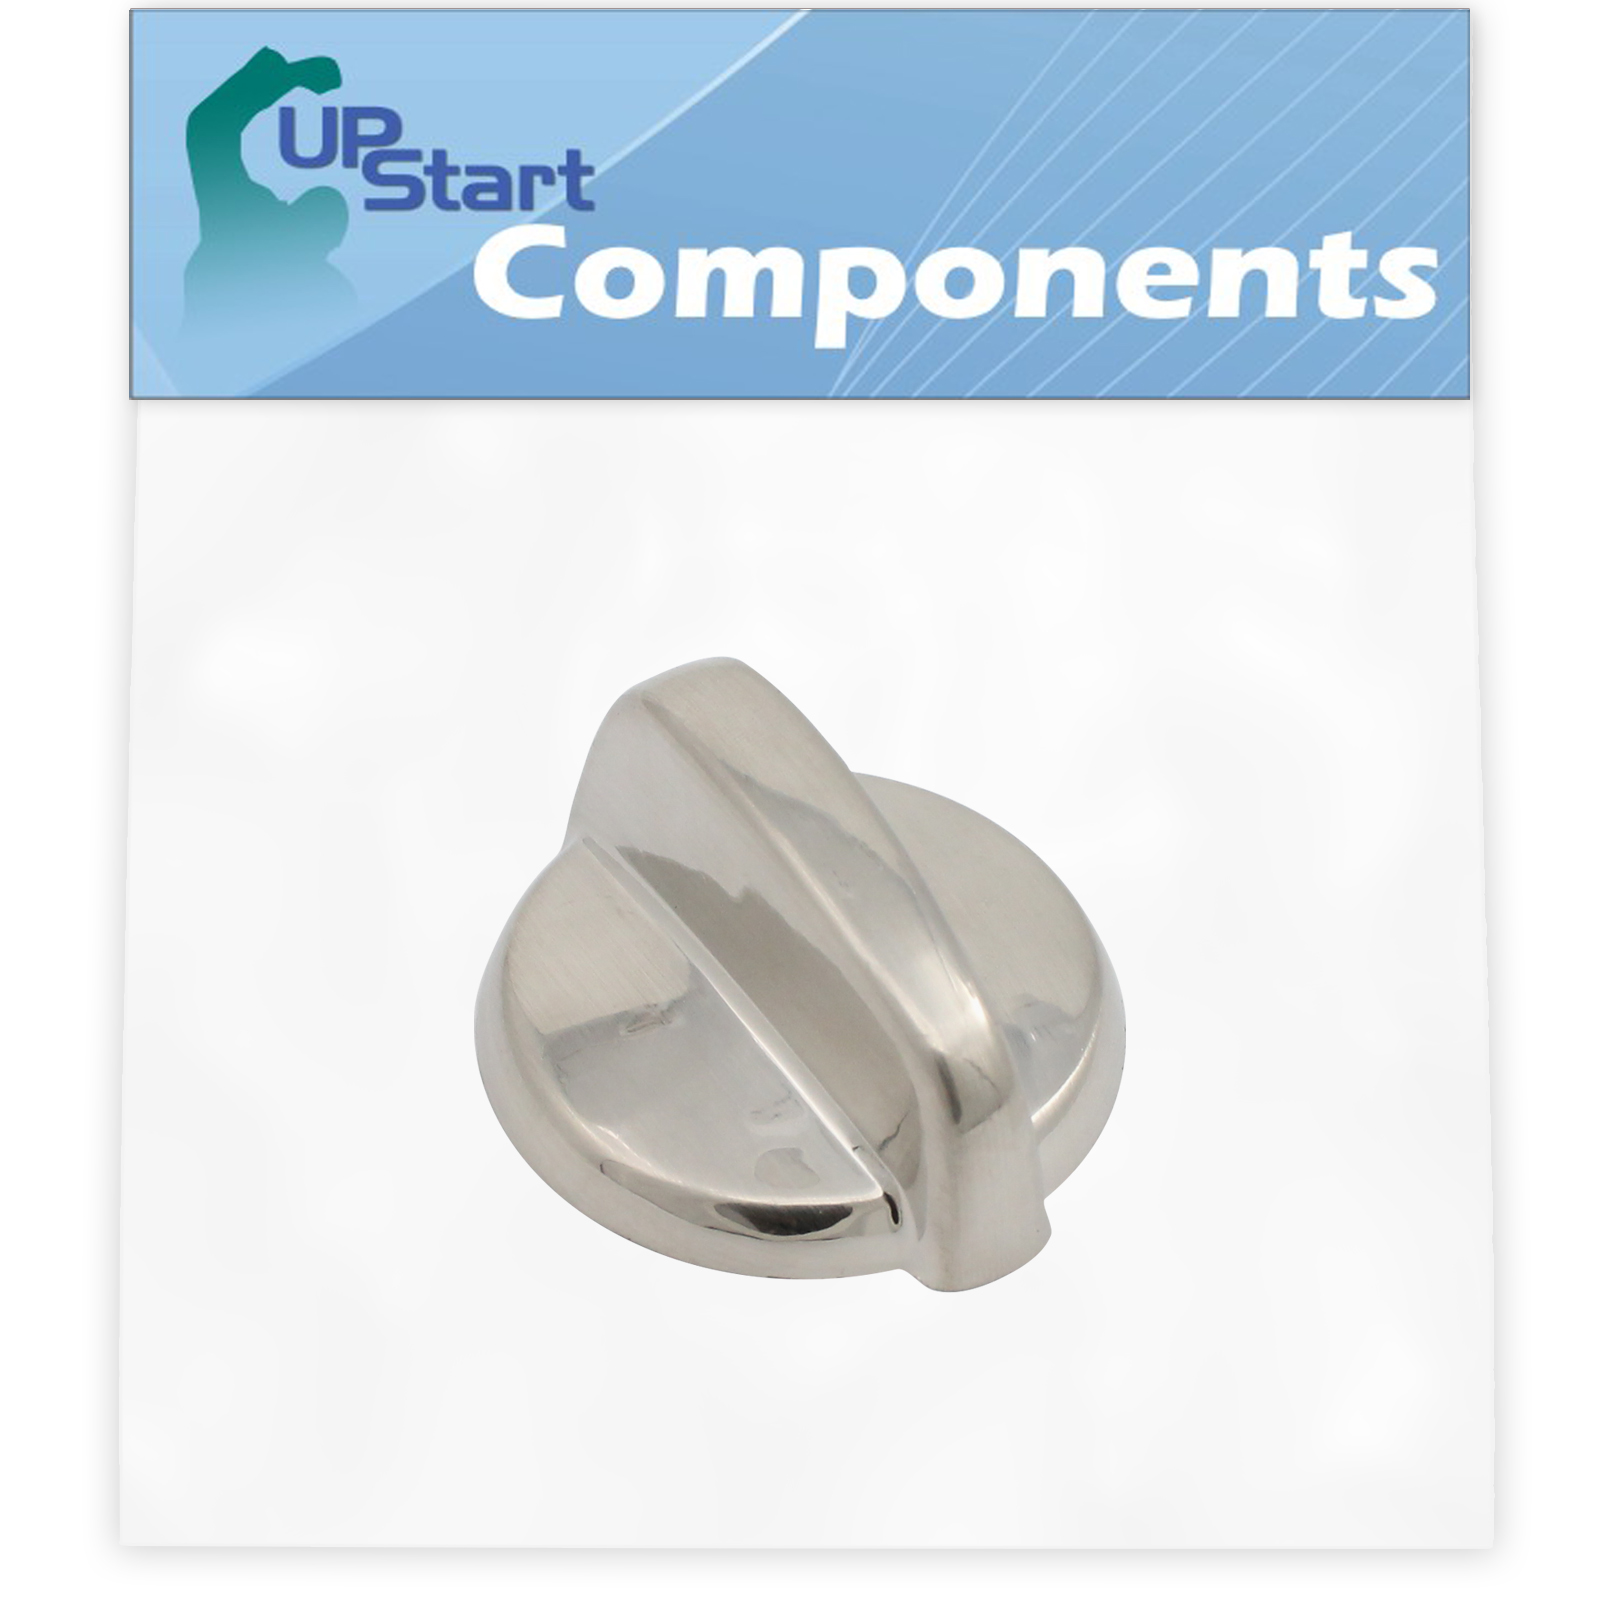 Replacement Control Knob WB03T10284 Stainless Steel Finish for General Electric JCBP800ST1SS Range - image 4 de 4